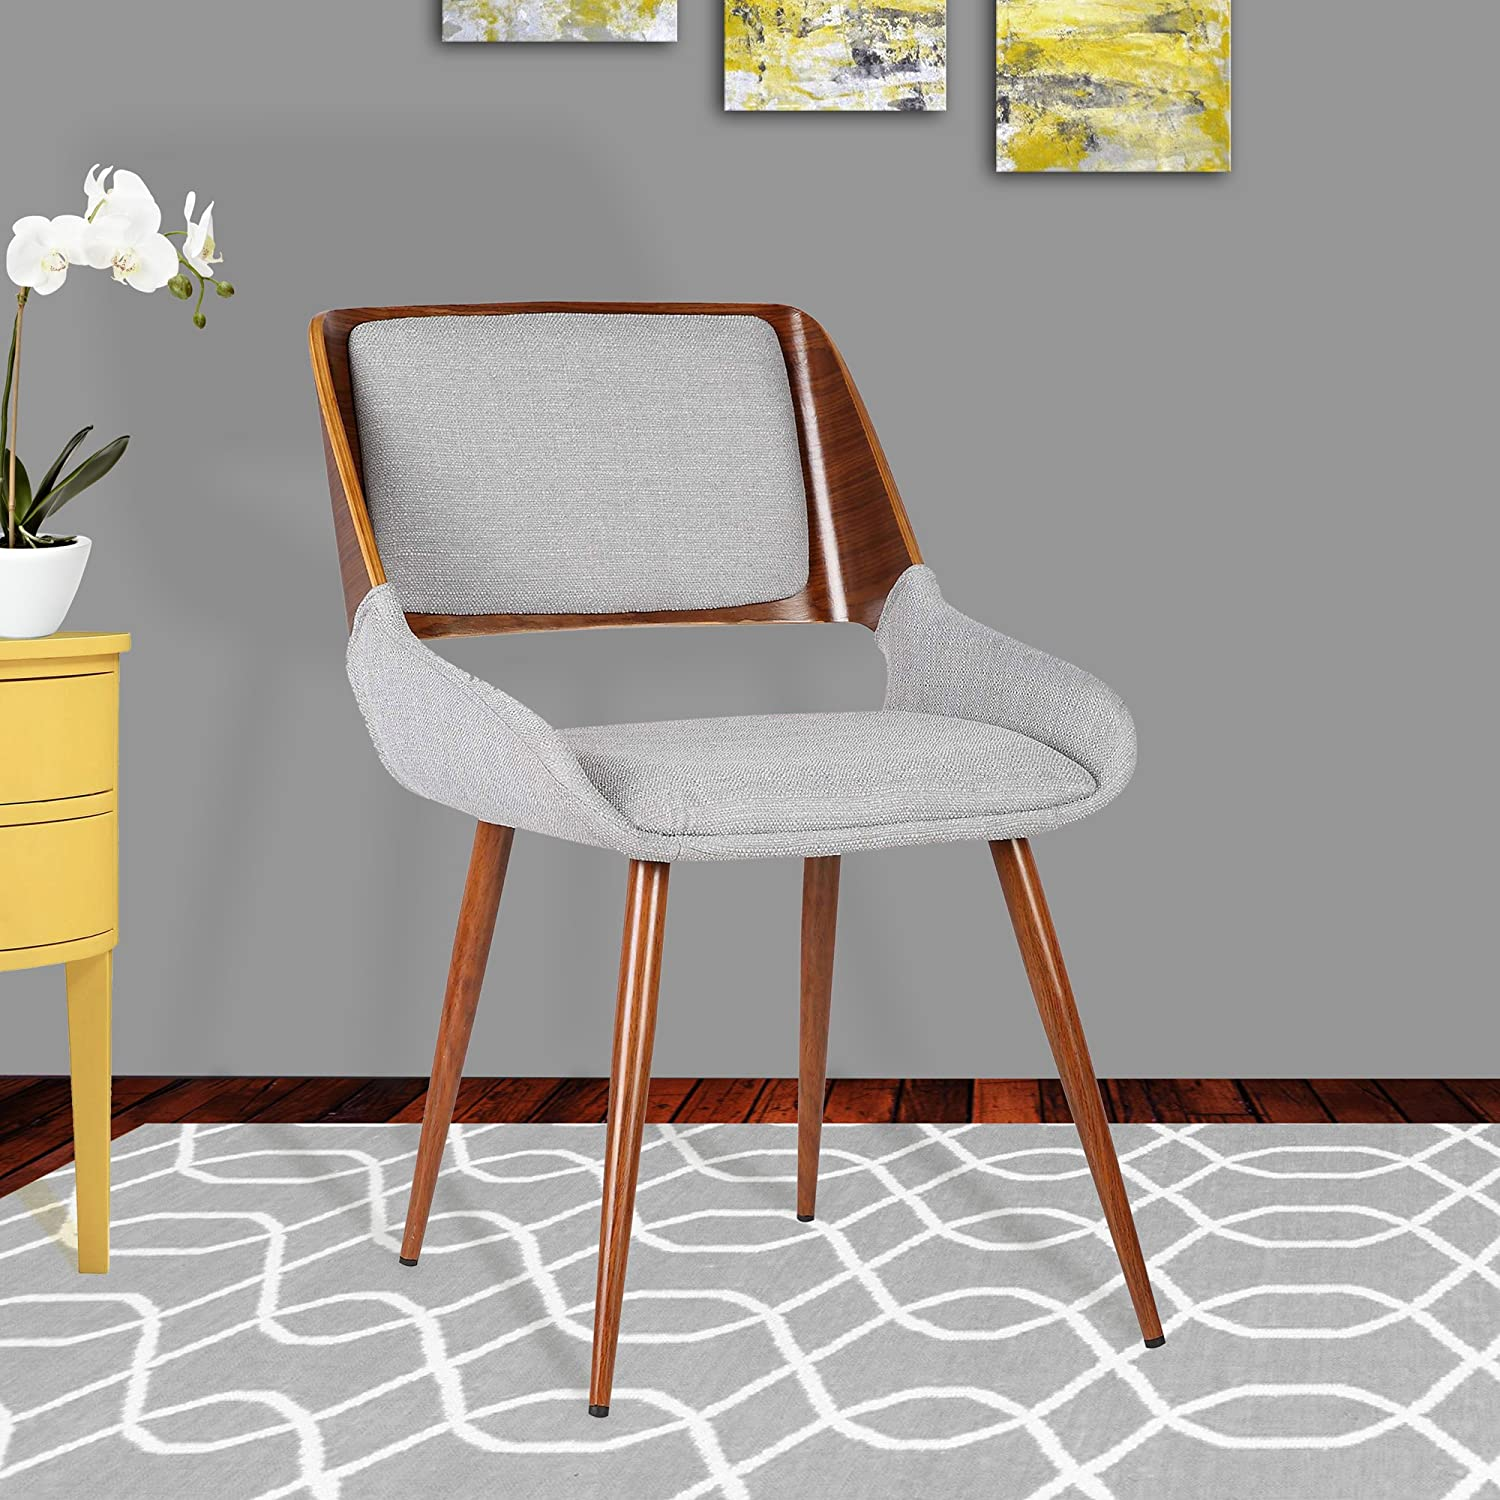 Armen Living Panda Dining Chair in Grey Fabric and Walnut Wood Finish